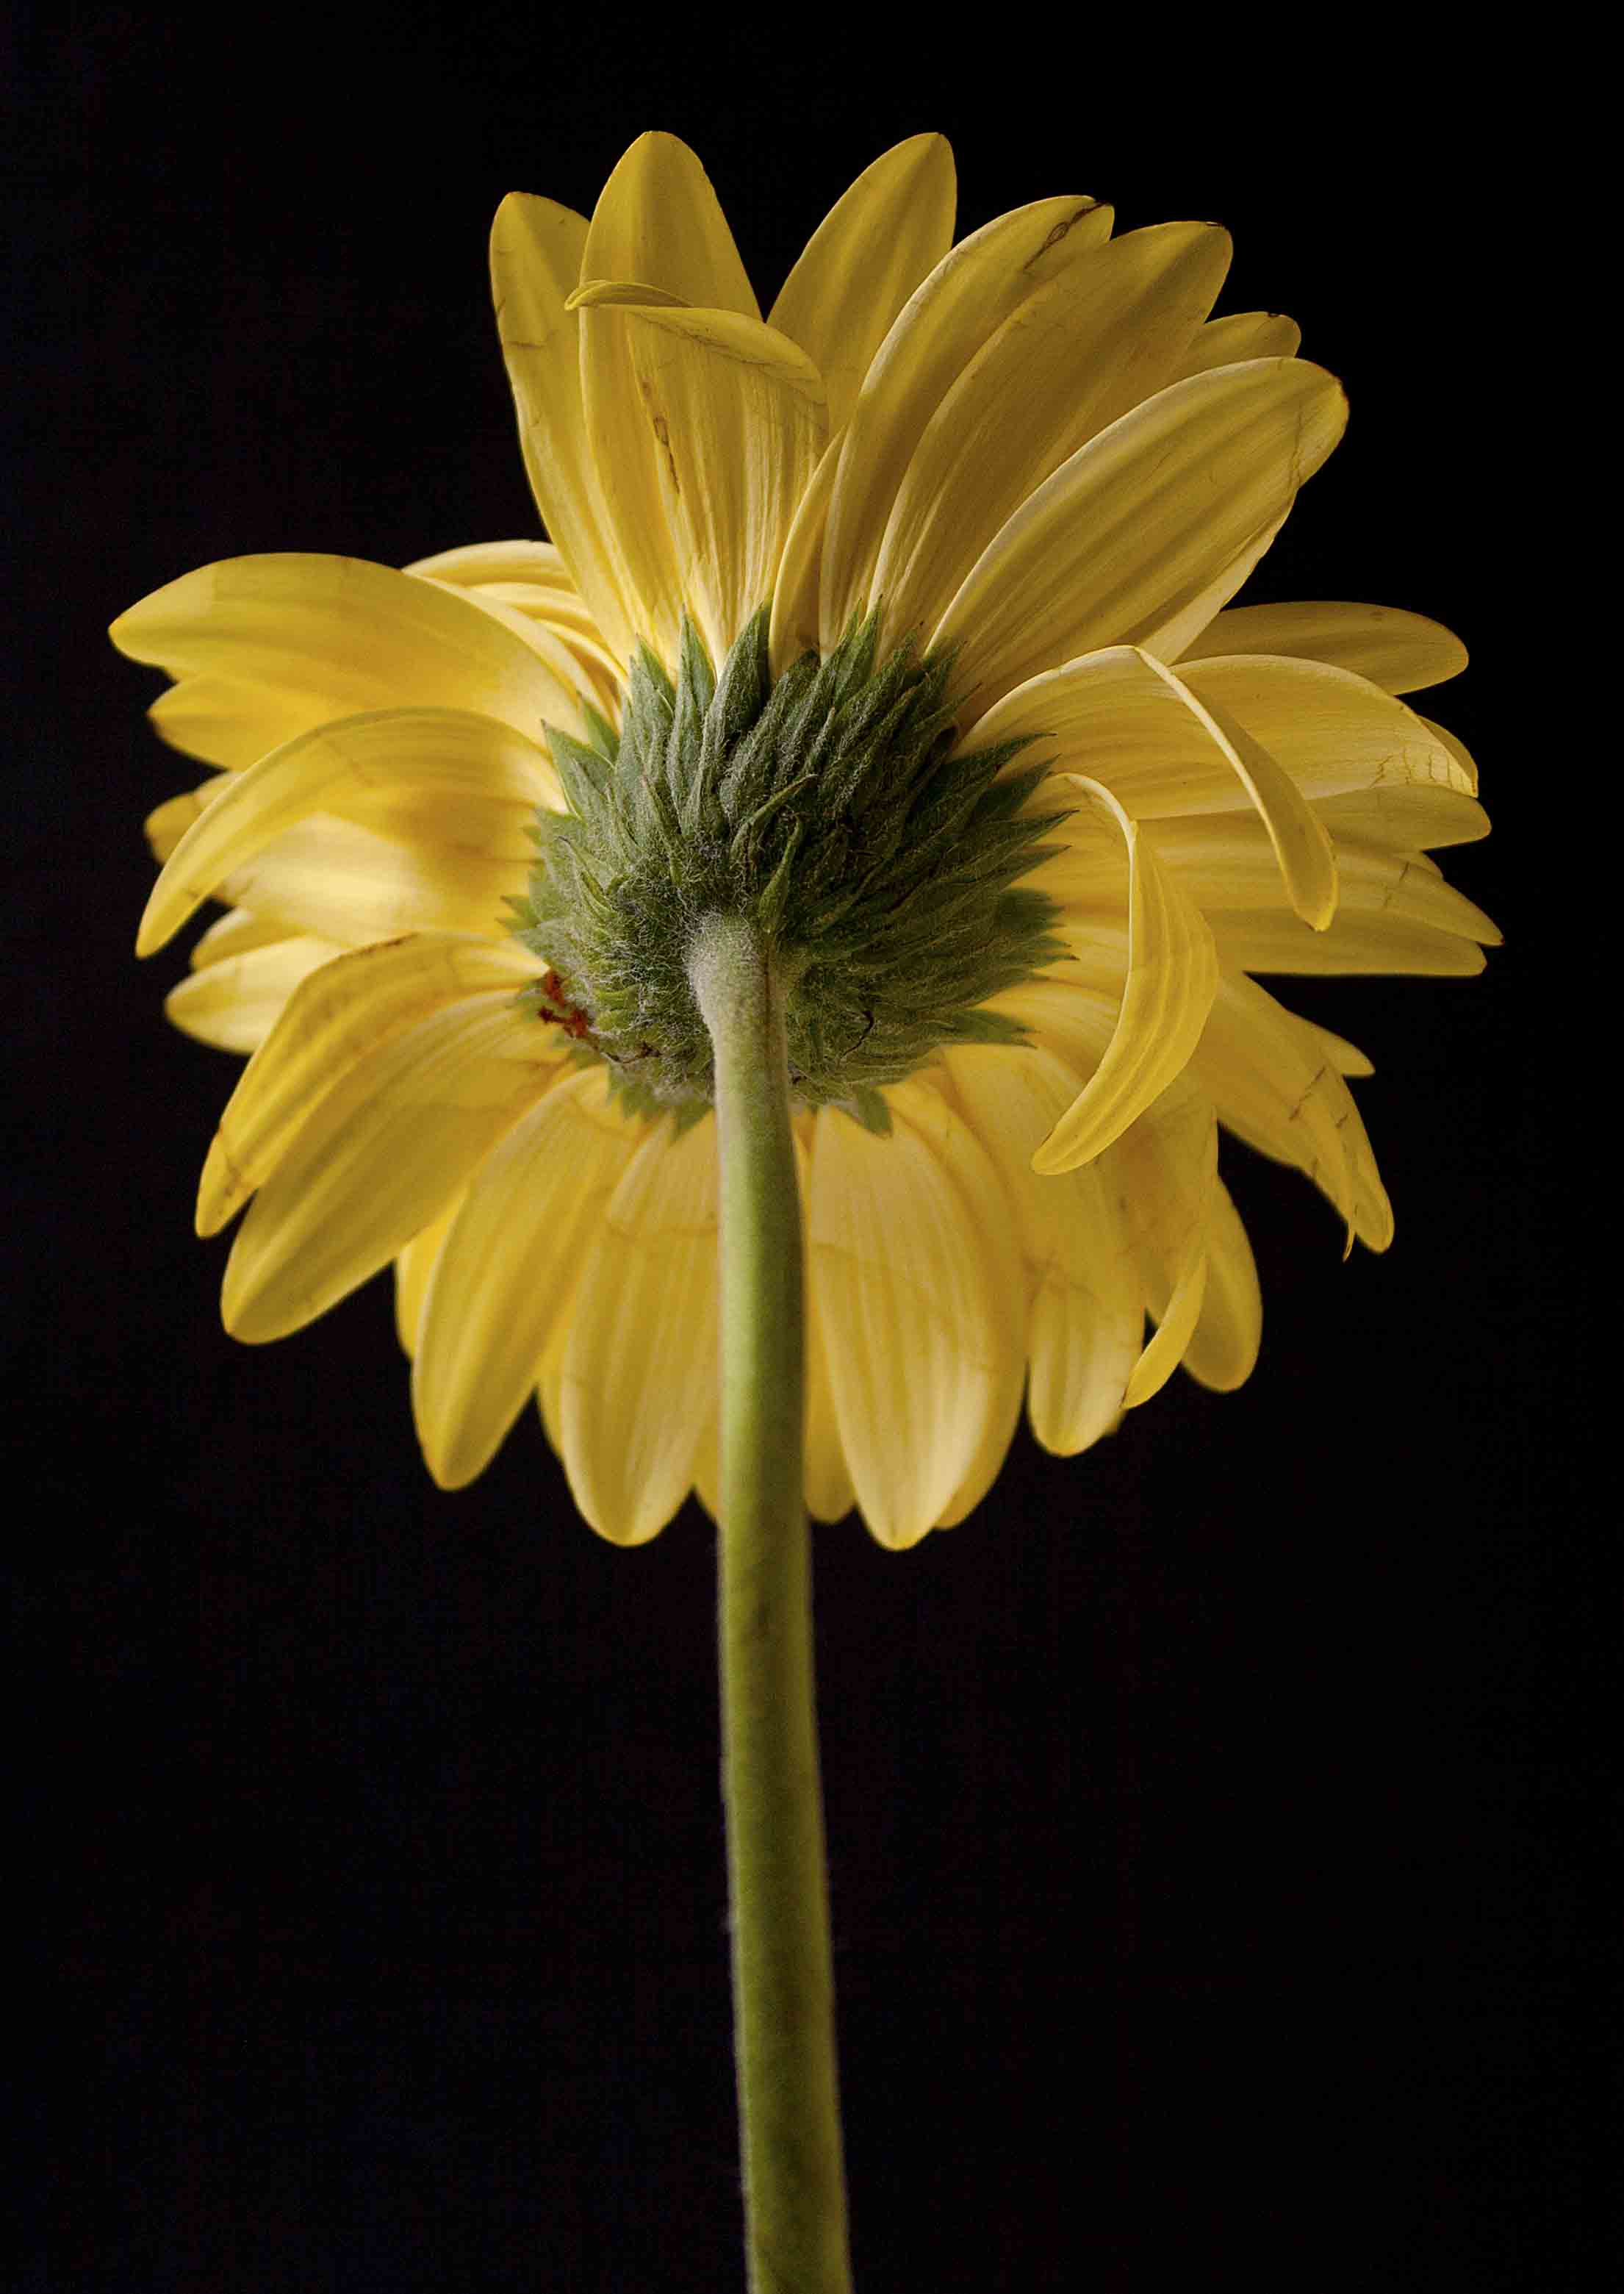 yellowdaisyback.jpg